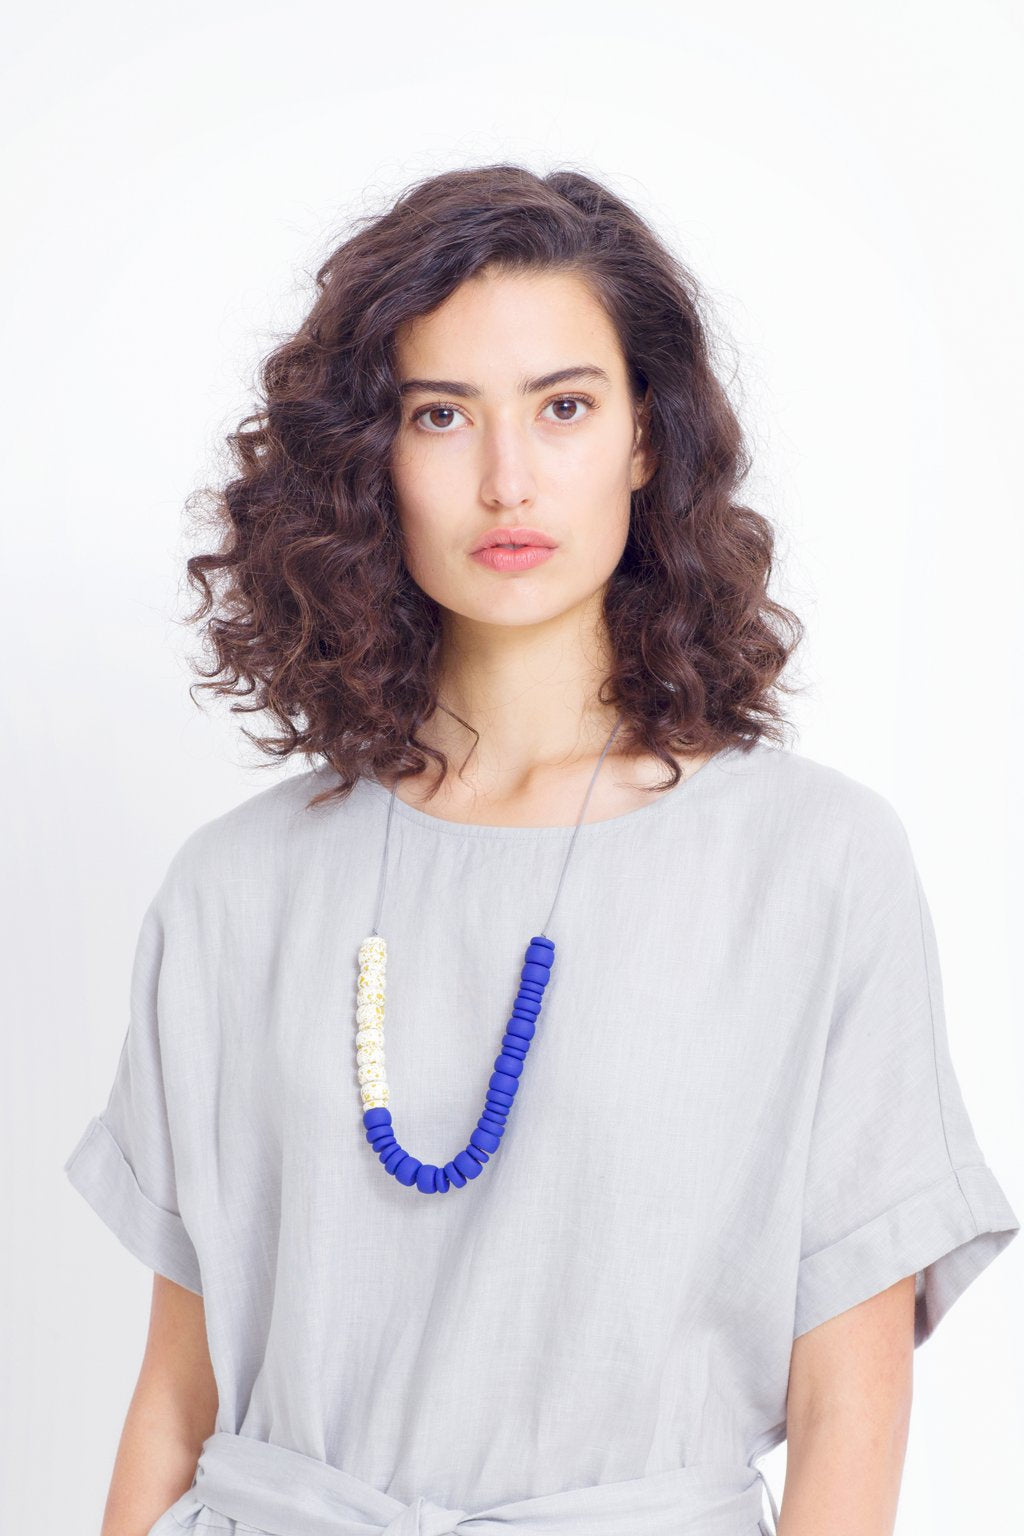 ELK The Label - Textura Half Necklace - Acid/ White / Iris Blue online at PAYA boutique